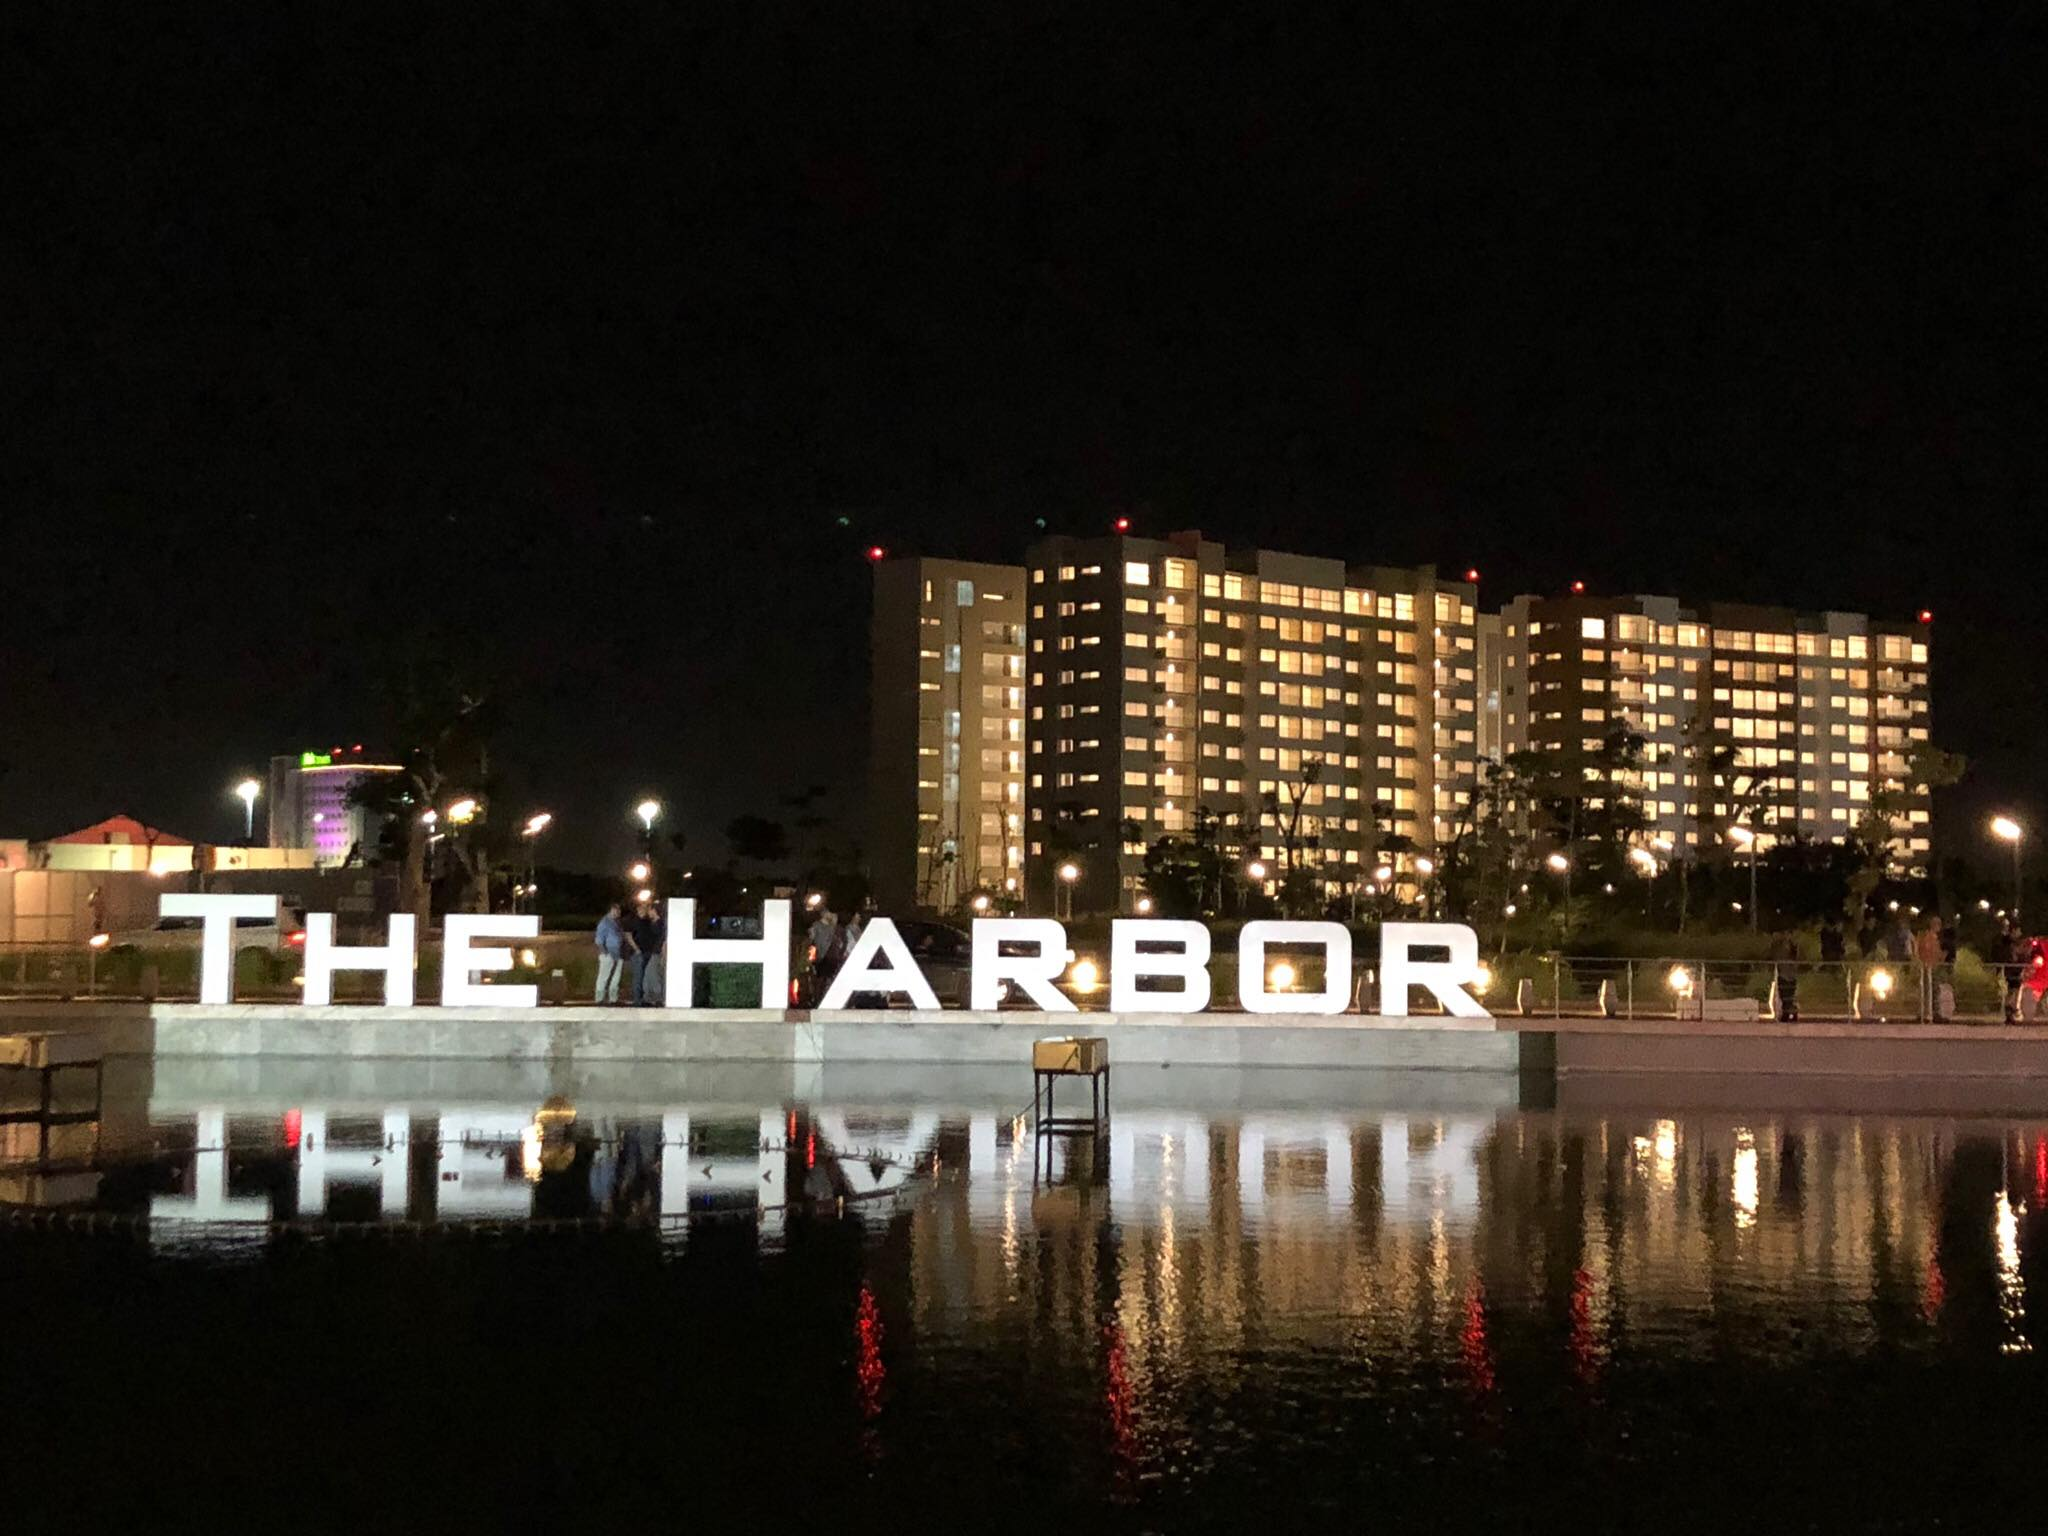 inauguracion-the-harbor-y-via-montejo